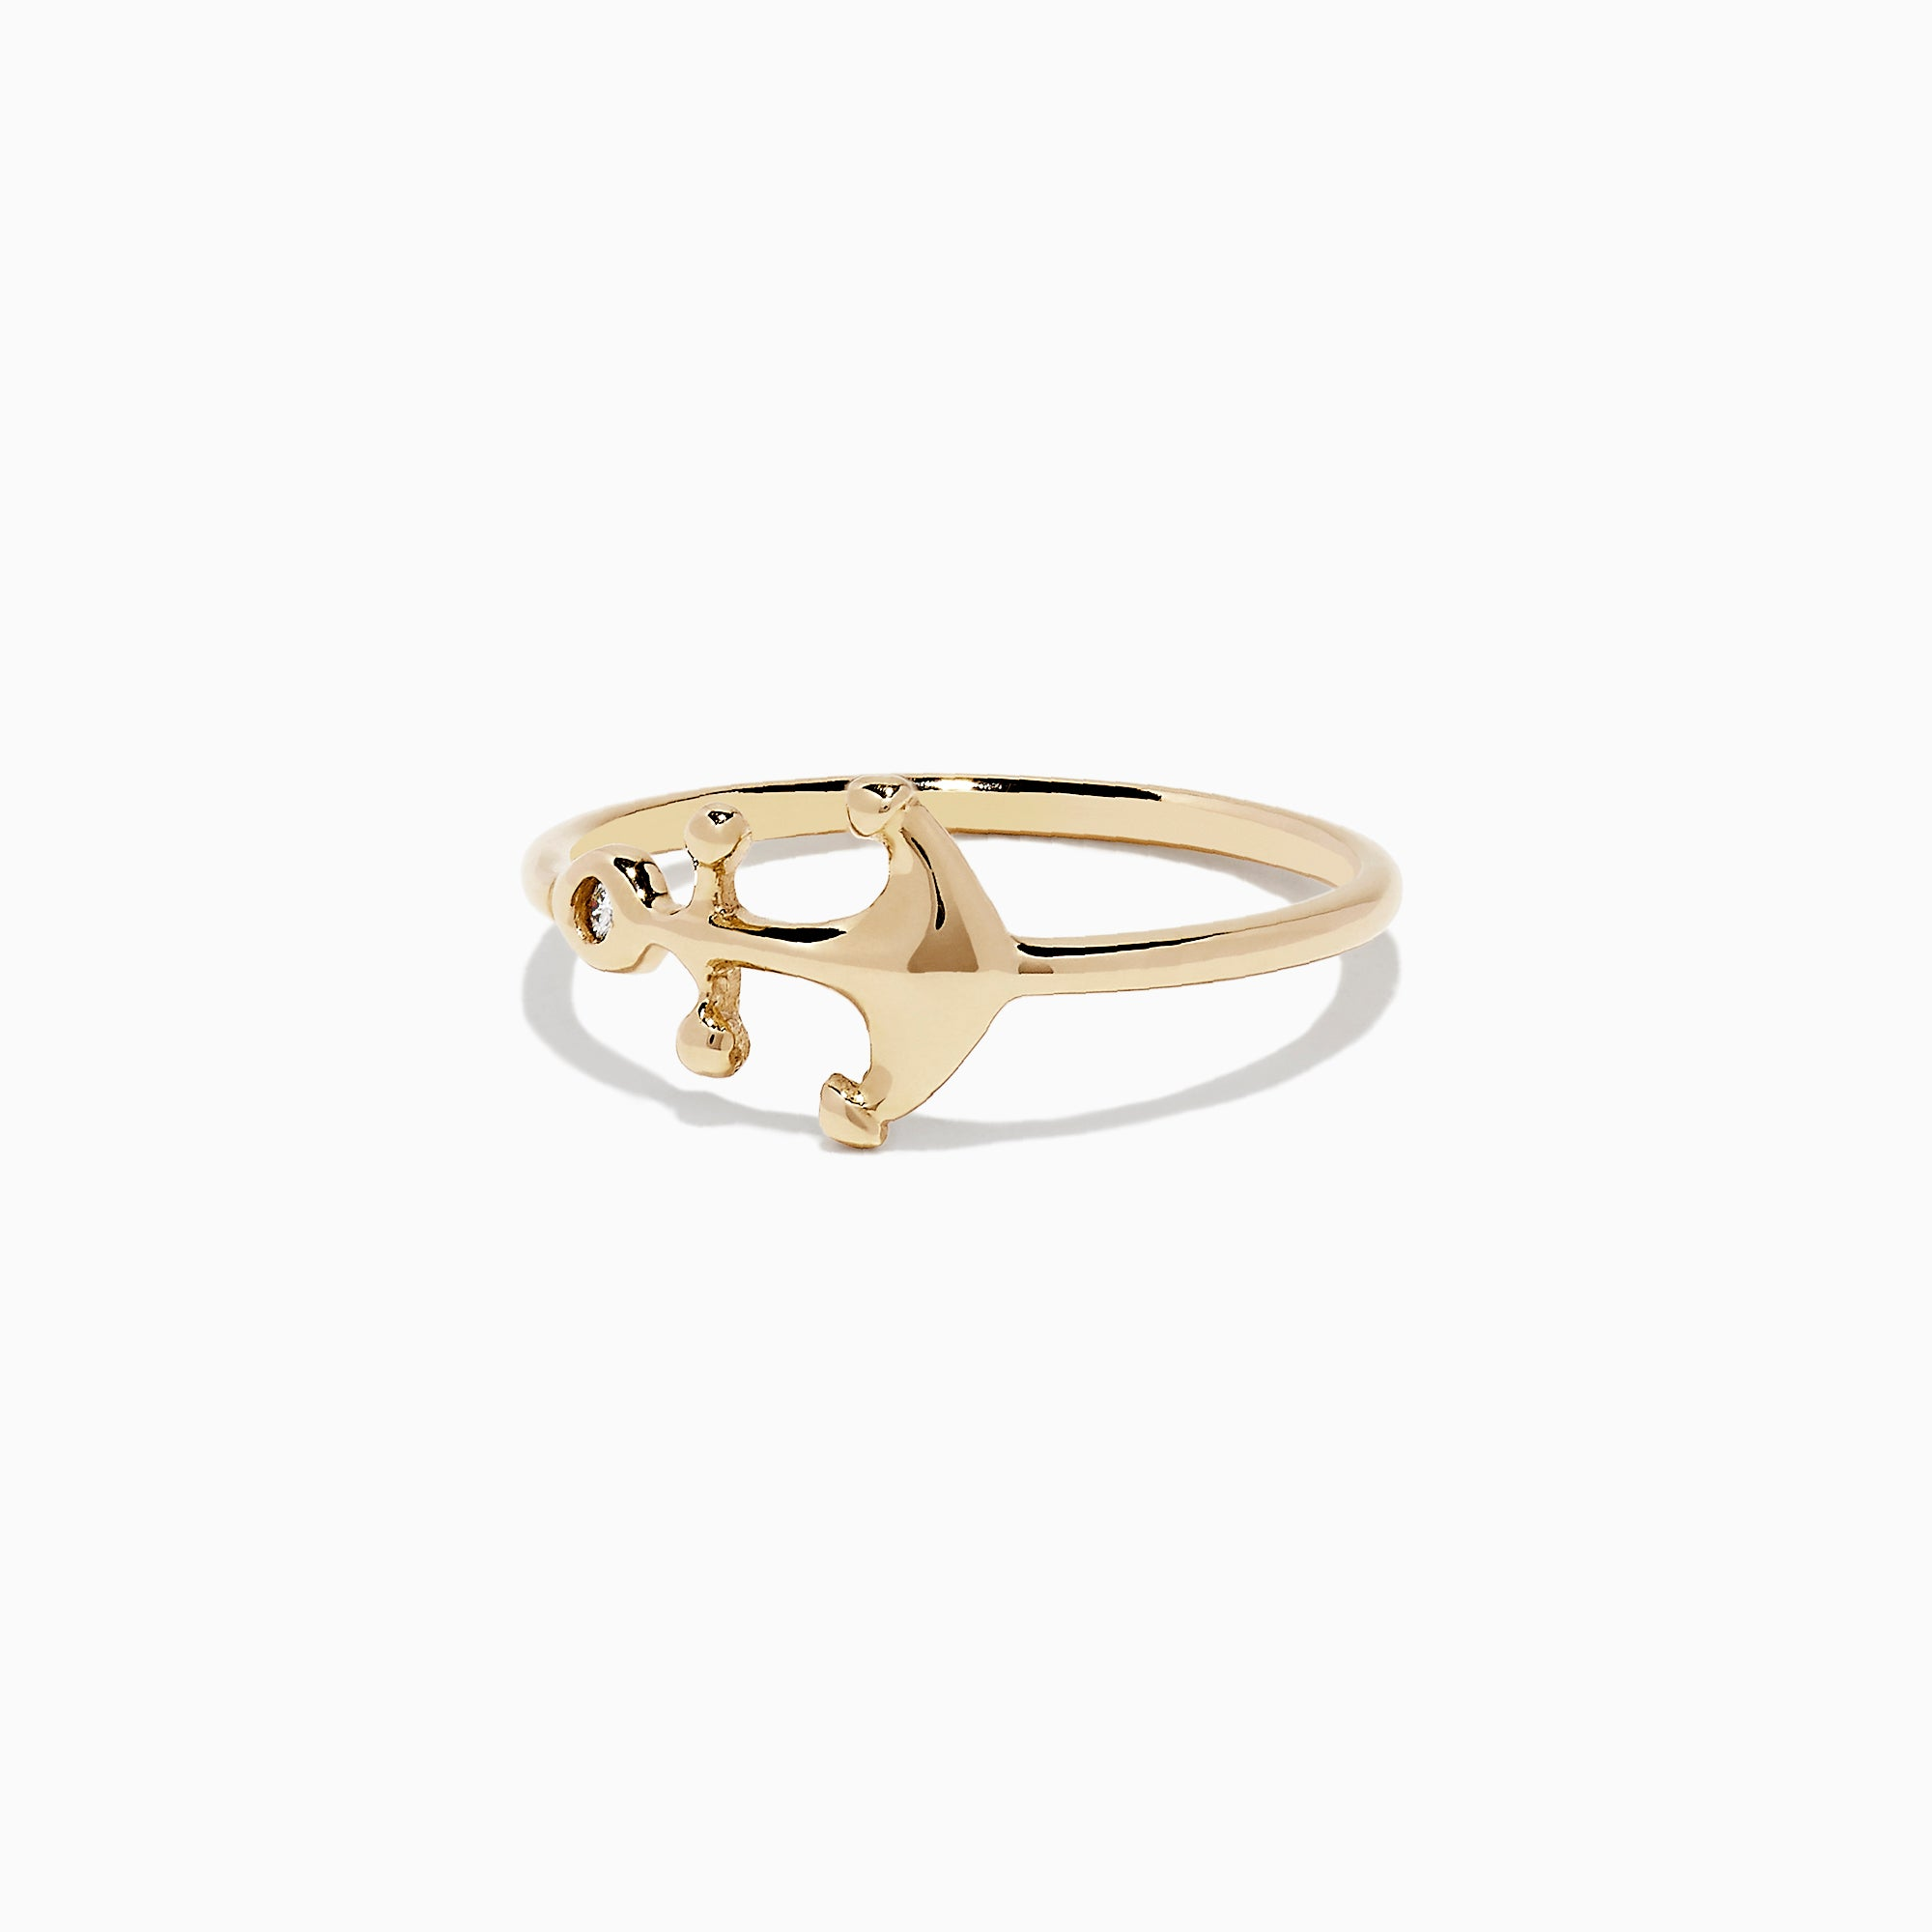 Effy Kidz 14K Yellow Gold Diamond Anchor Ring, 0.01 TCW